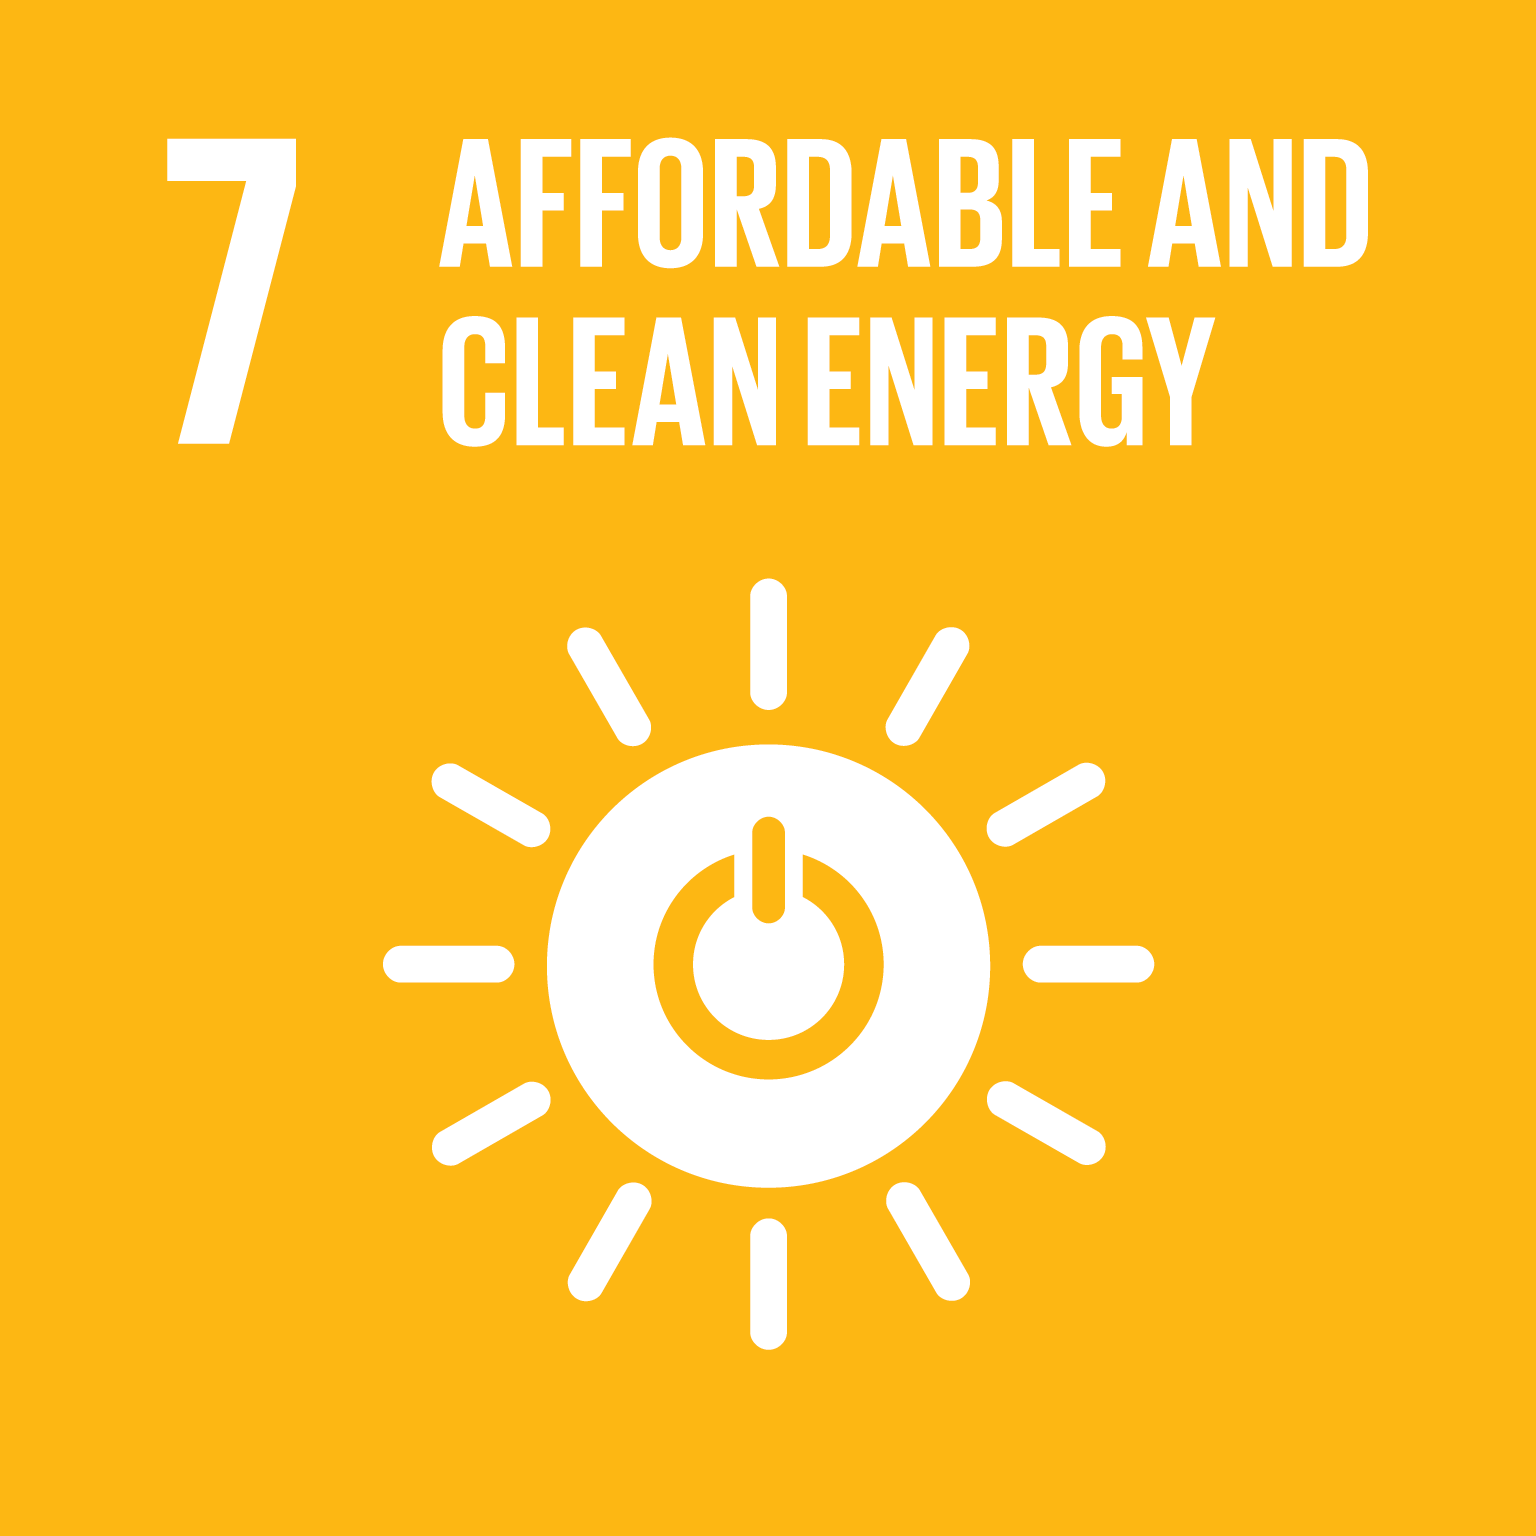 Affordable and Clean Energy - Ensure access to affordable, reliable, sustainable and modern energy for all